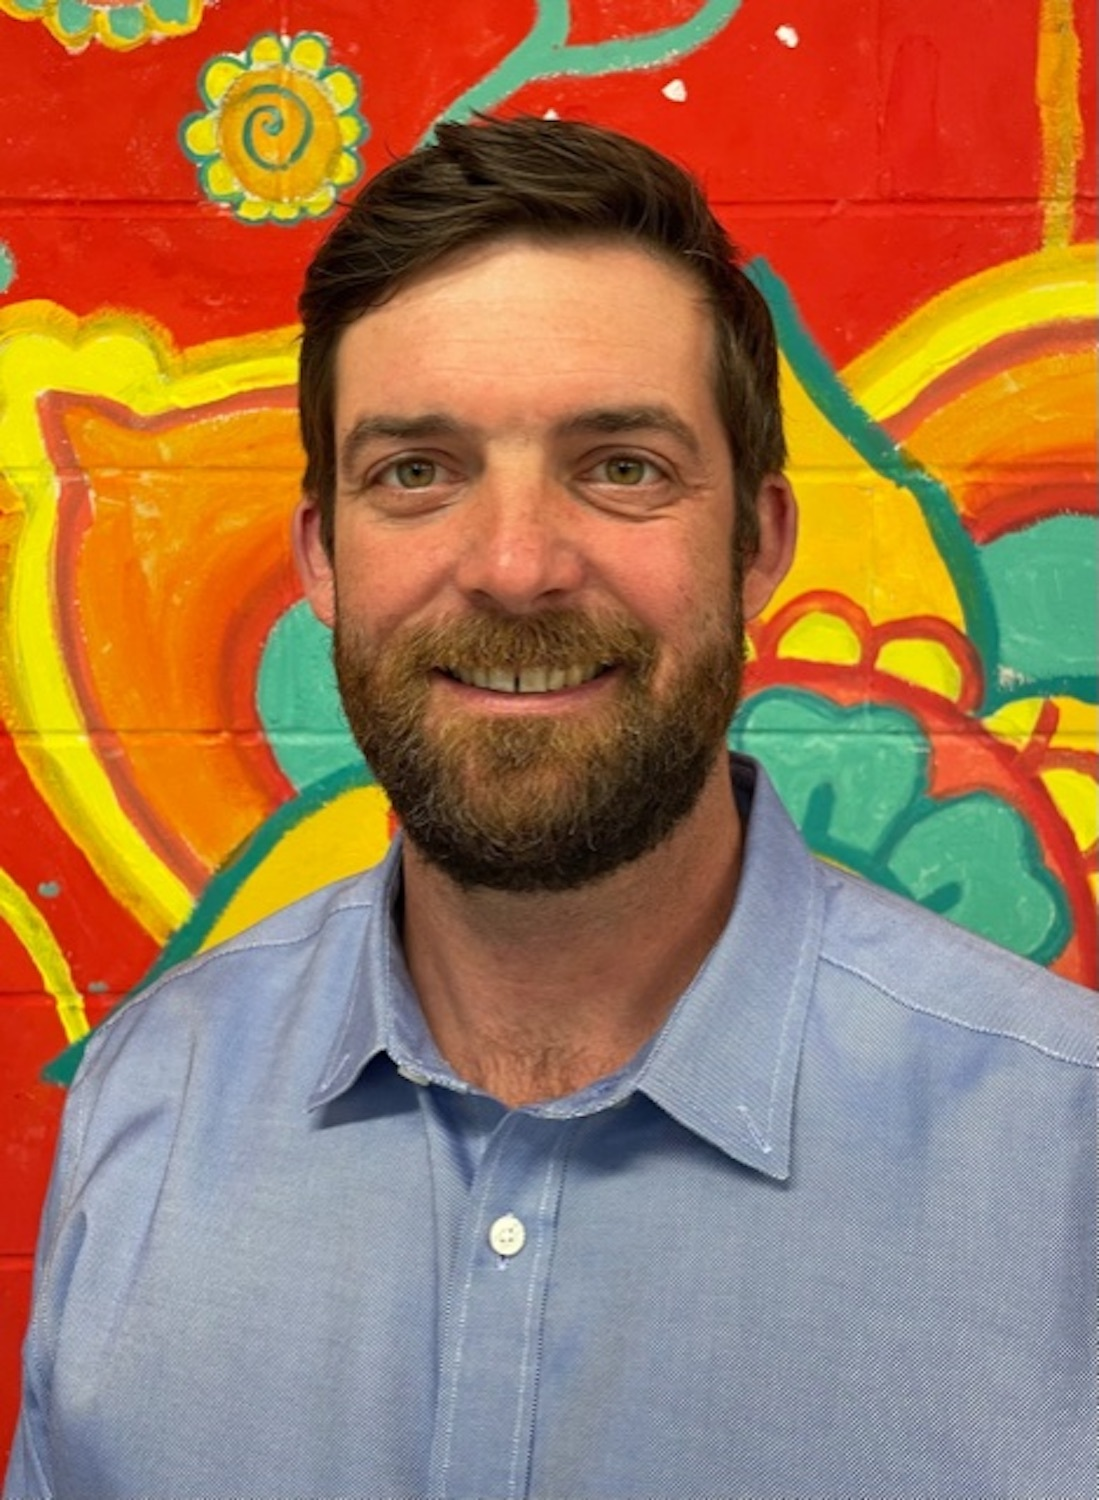 East Hampton High School English teacher and chairperson of the English department, Joshua Odom, has been appointed Spring School's new assistant principal.